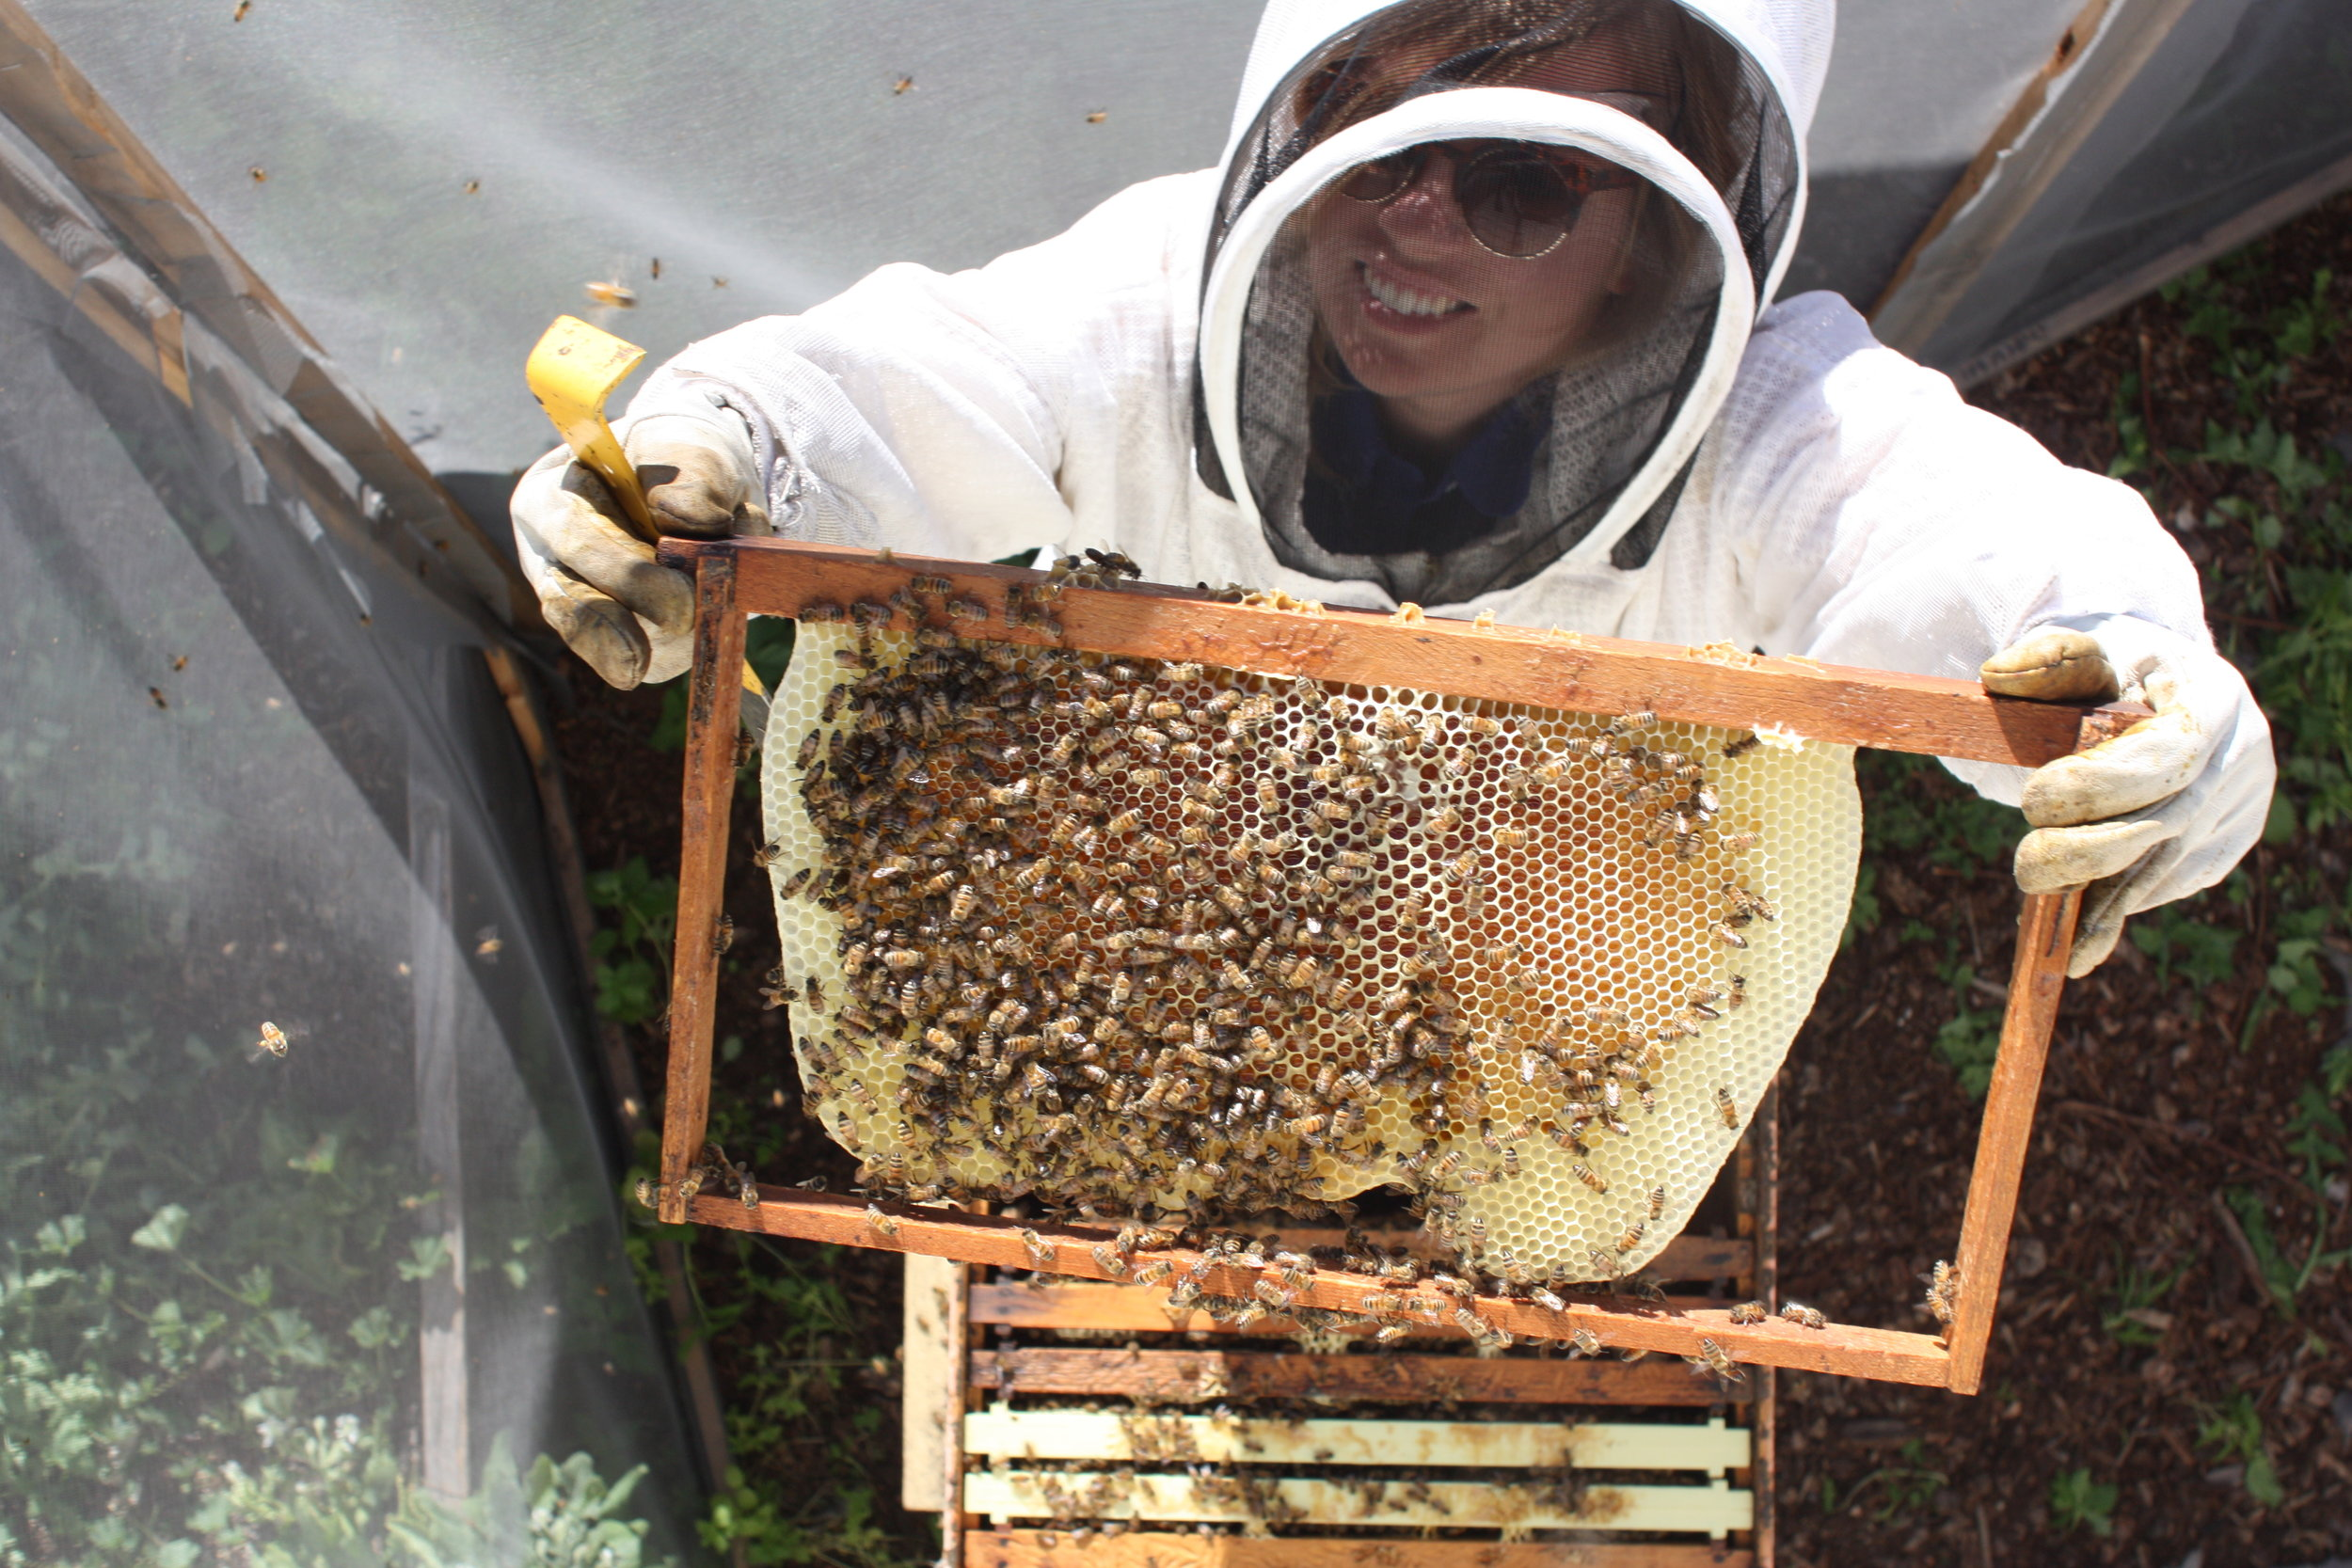 Hillary tending her bees.